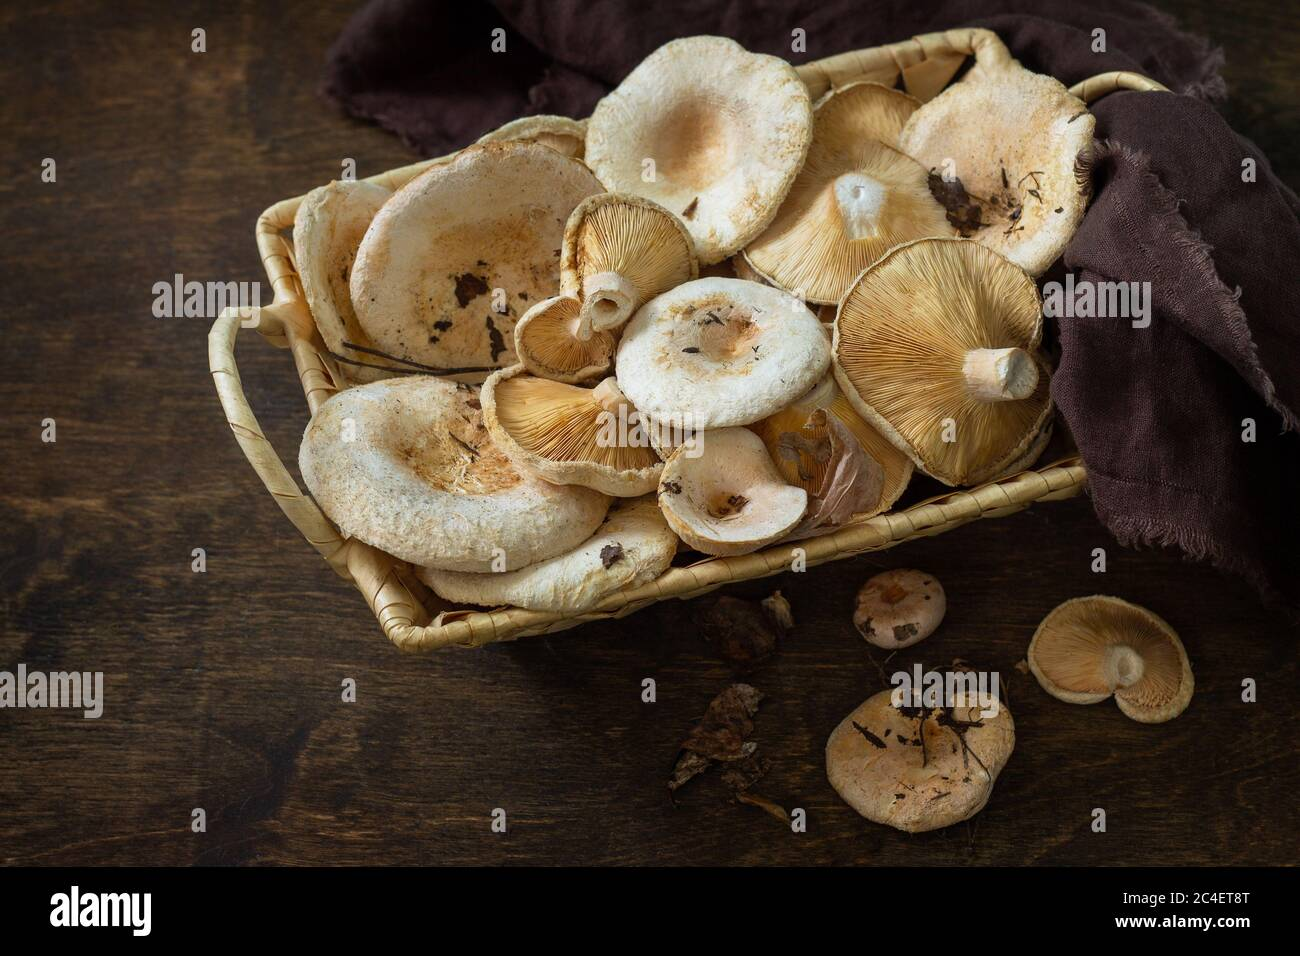 Mushroom Chanterelle over Wooden Background. Forest picking mushrooms Chanterelle in wickered basket. Cooking delicious organic mushroom. Stock Photo